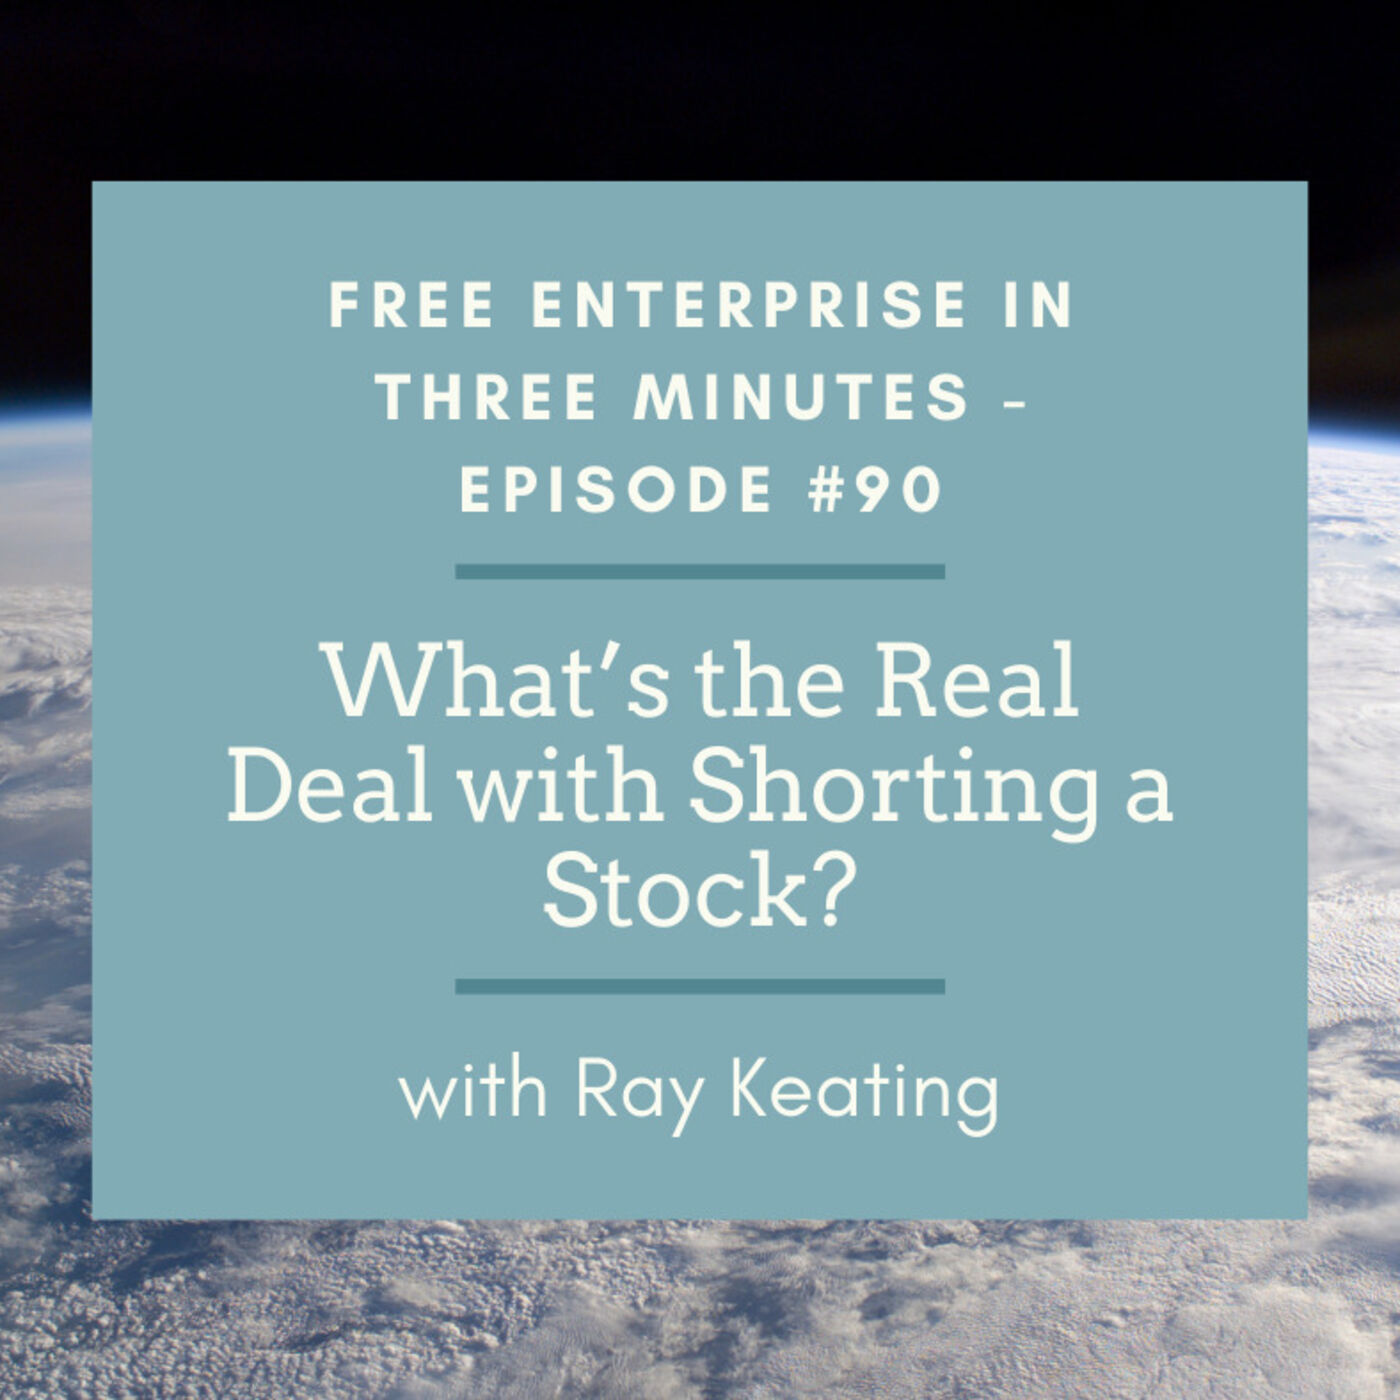 Episode #90: What's the Real Deal with Shorting a Stock?